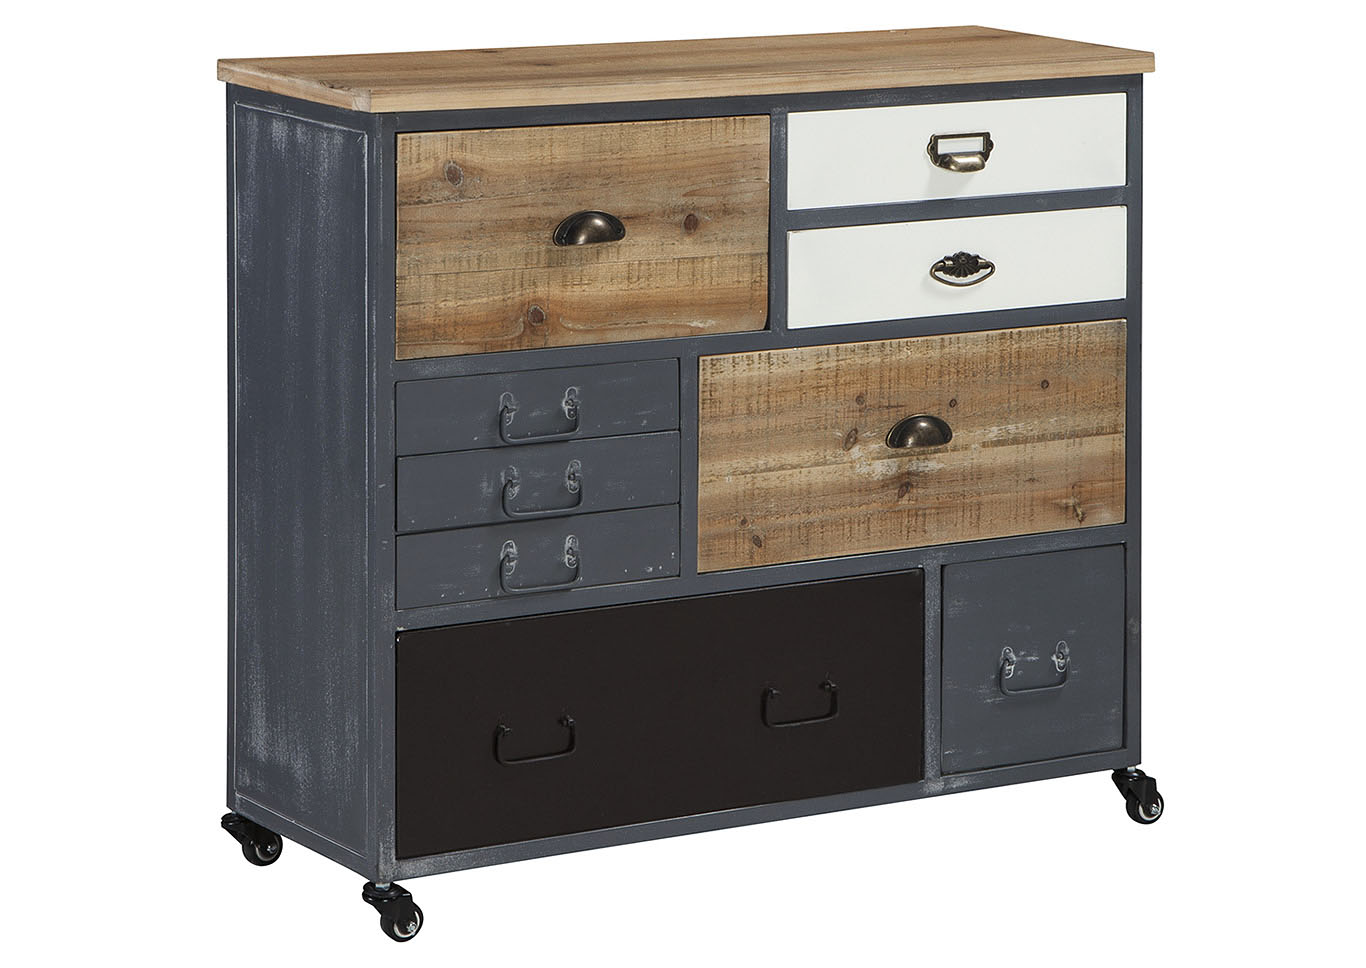 Ponder Ridge Gray Accent Cabinet,Signature Design By Ashley